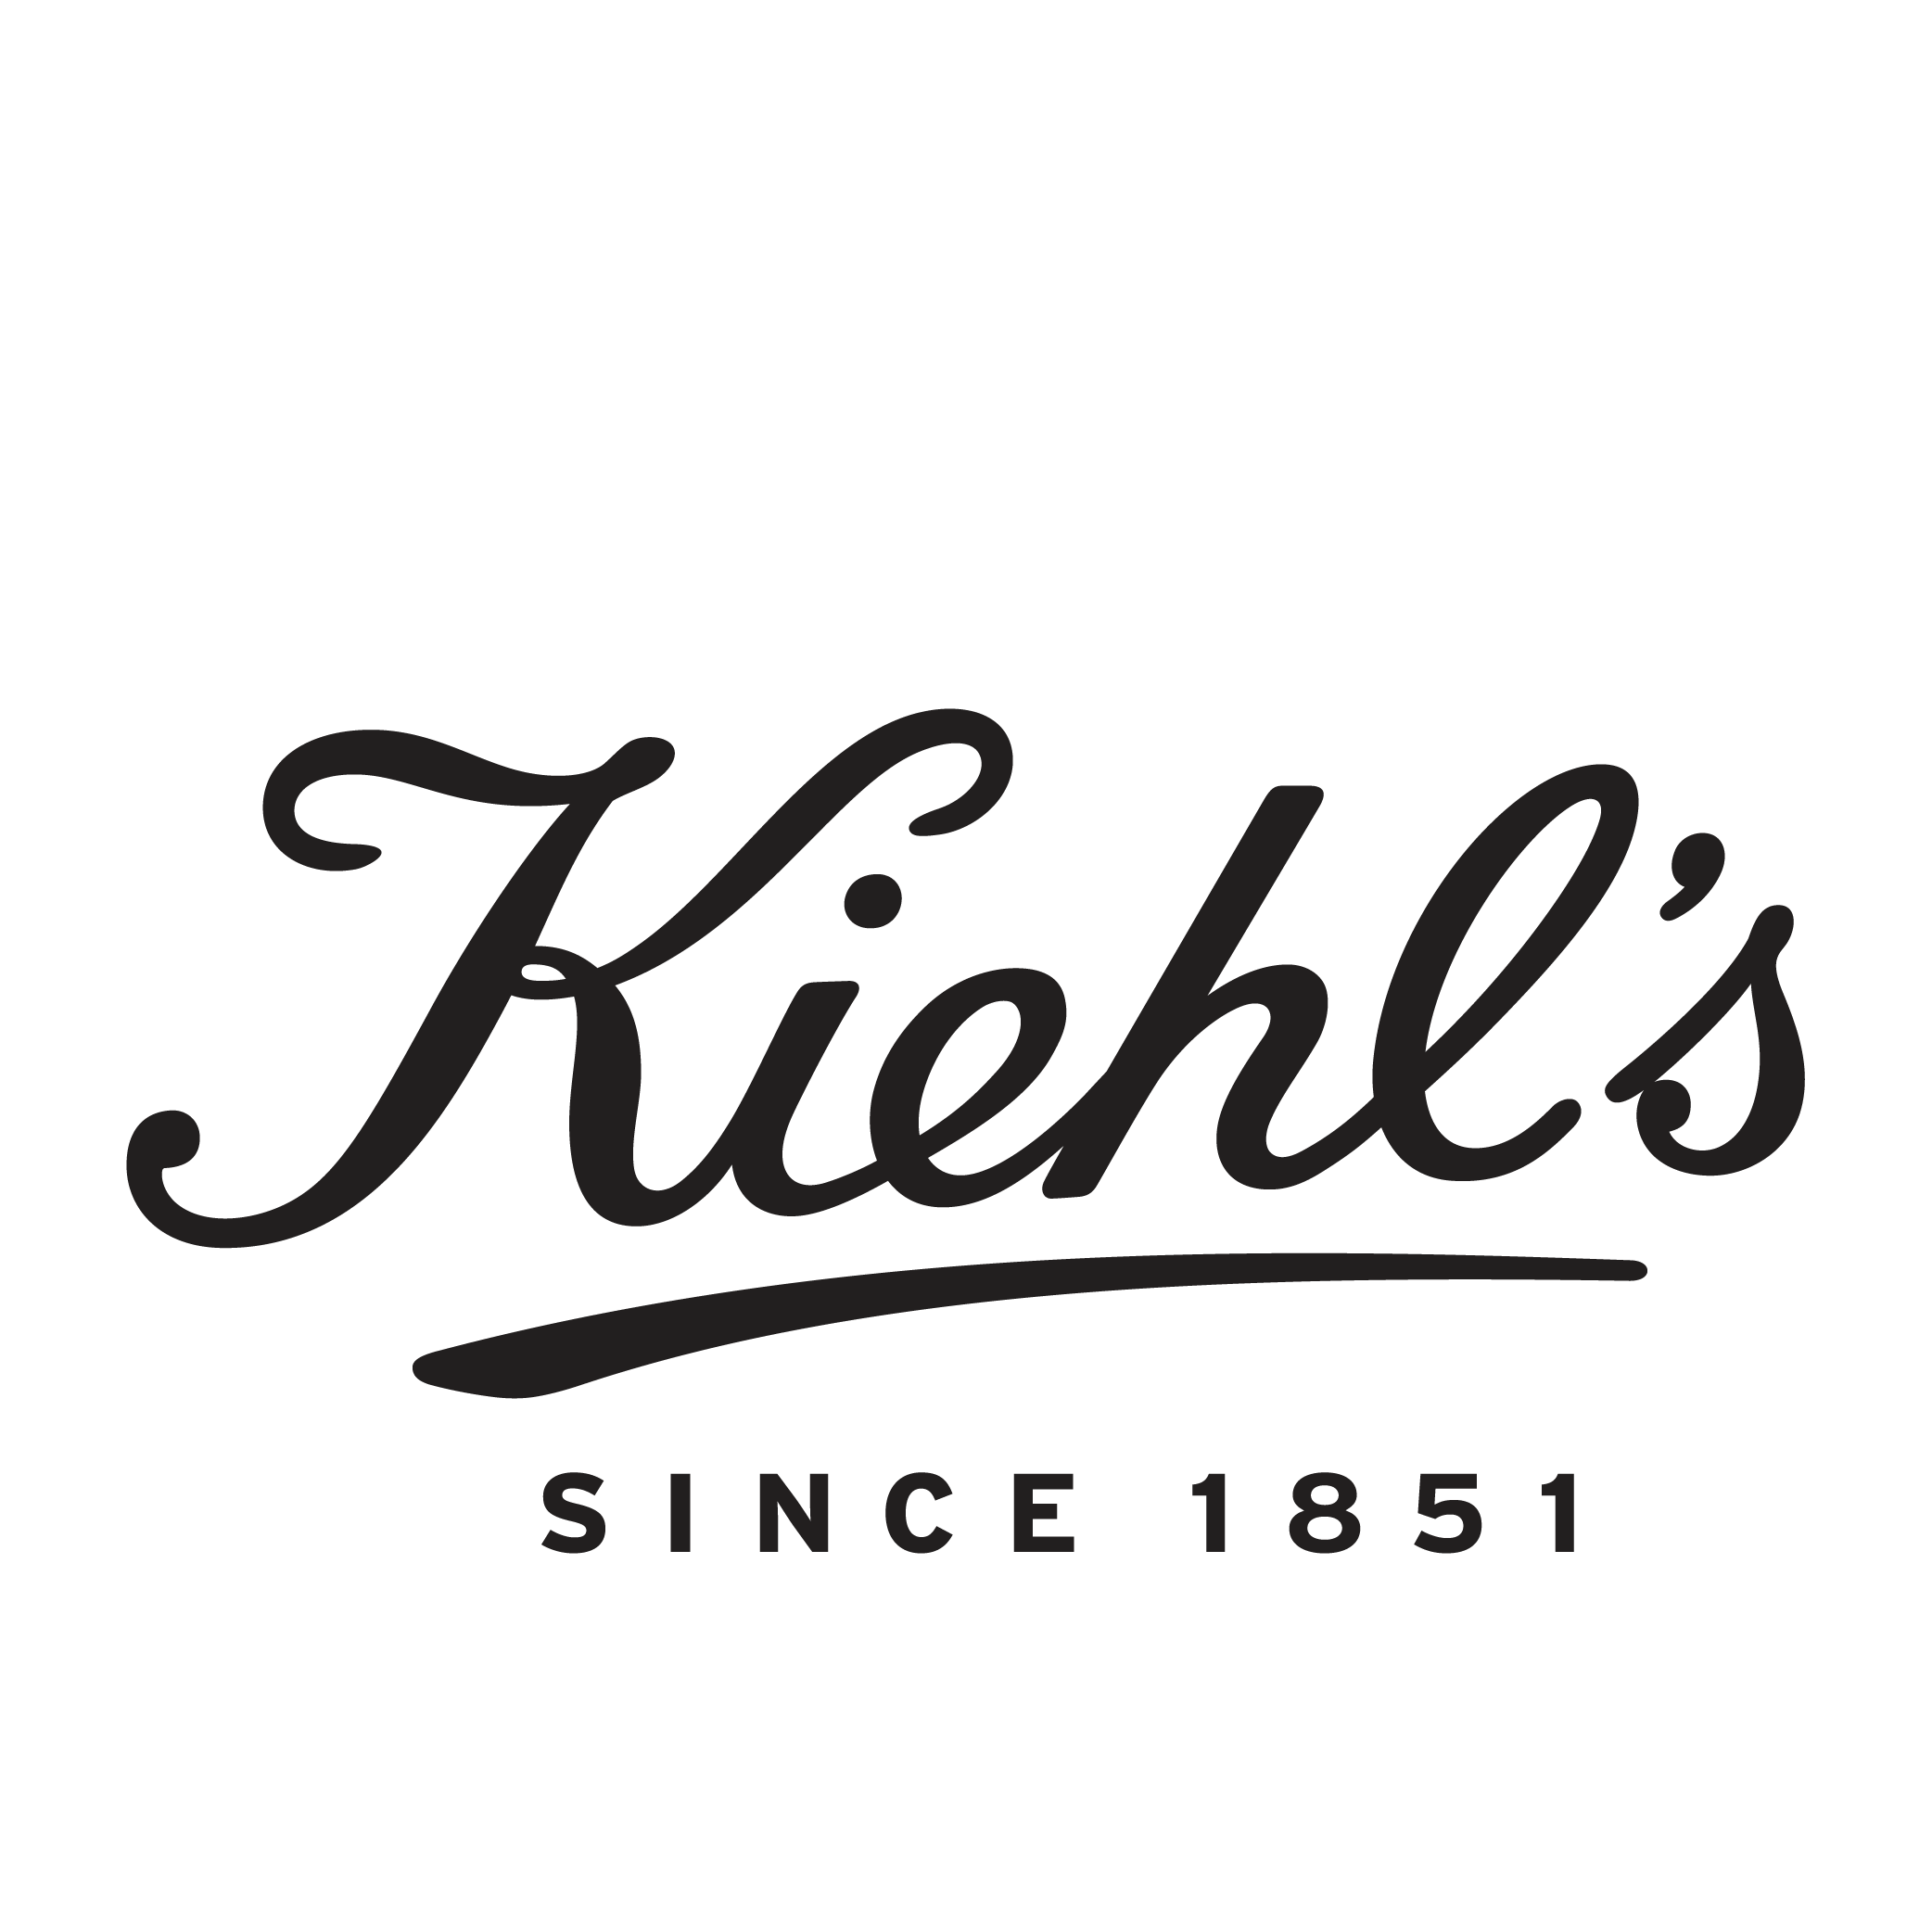 200219_ logo for website_Kiehl_s